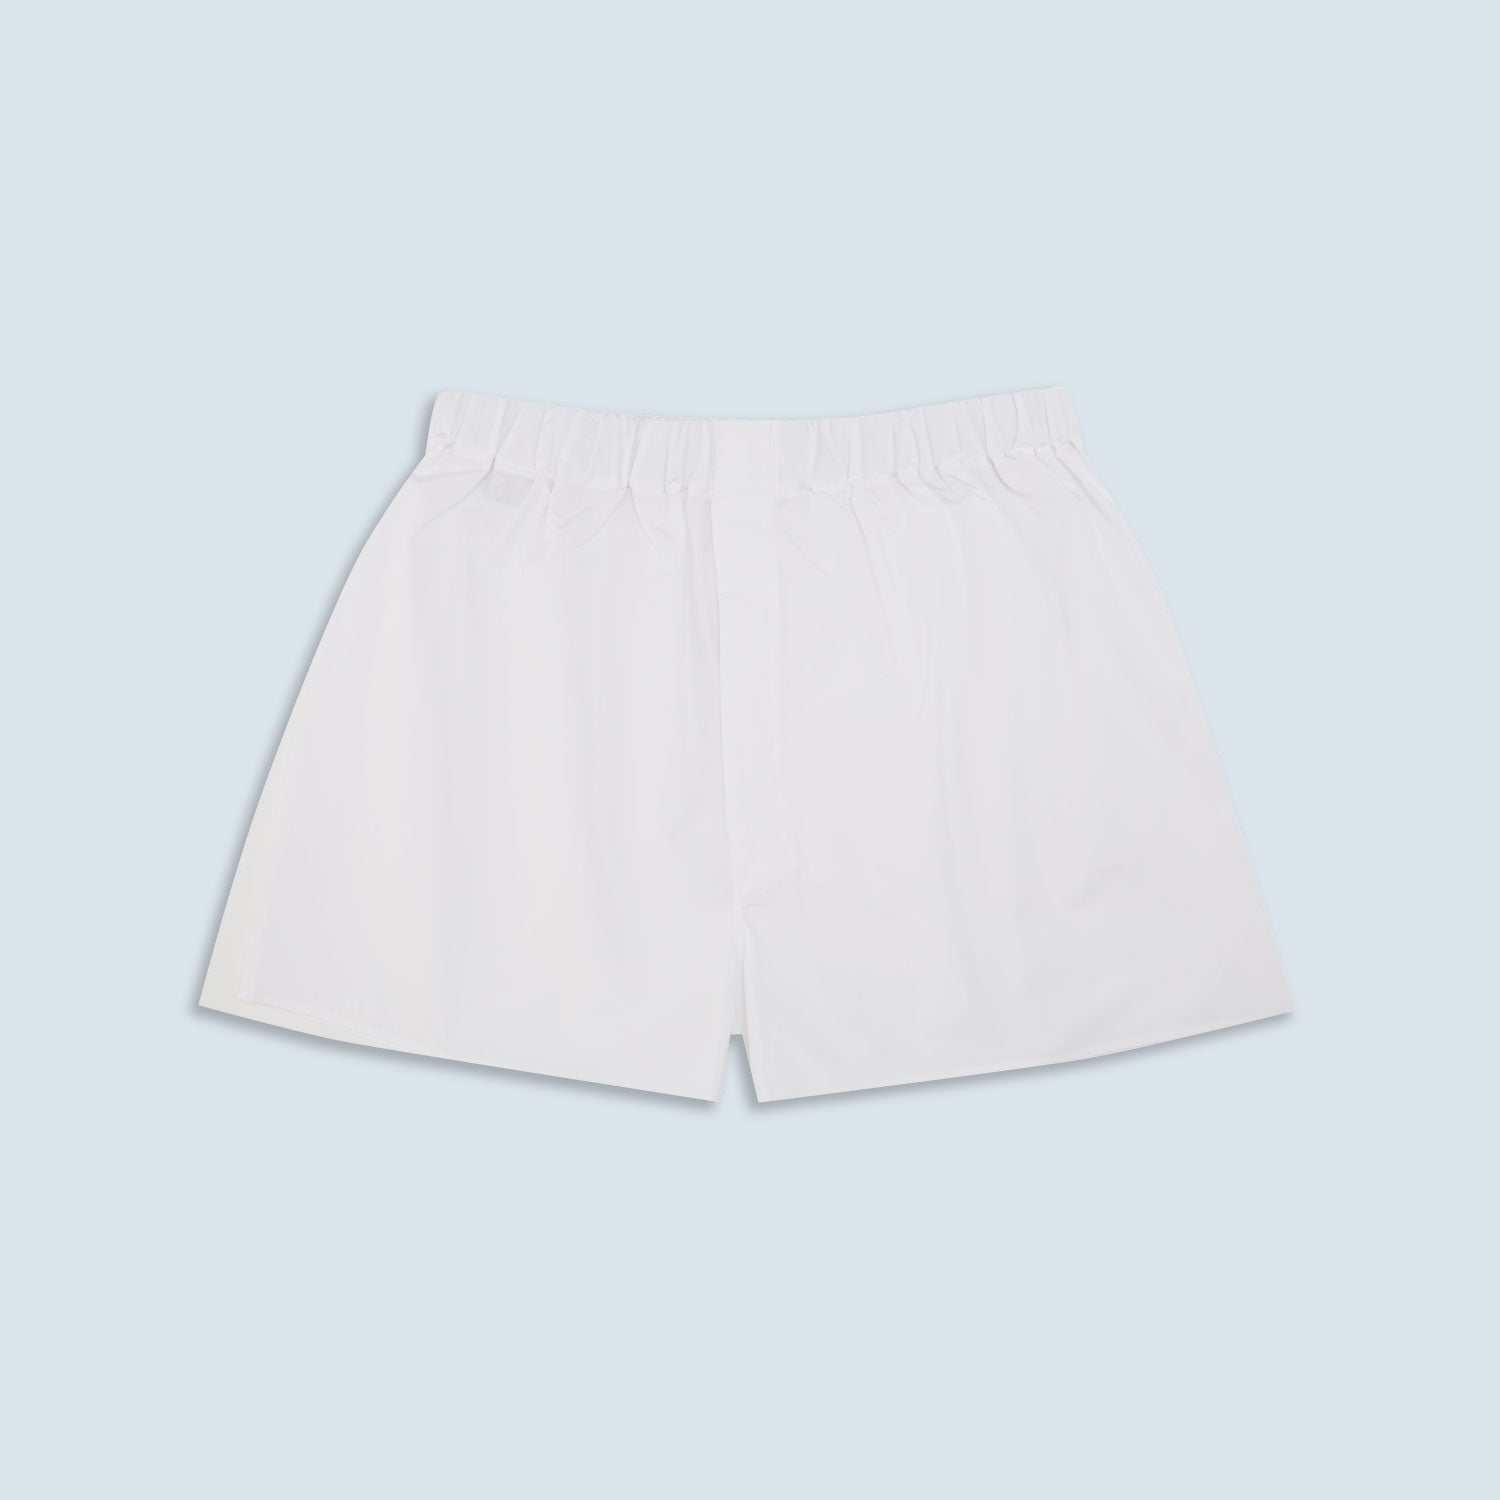 White Sea Island Quality Cotton Boxer Shorts